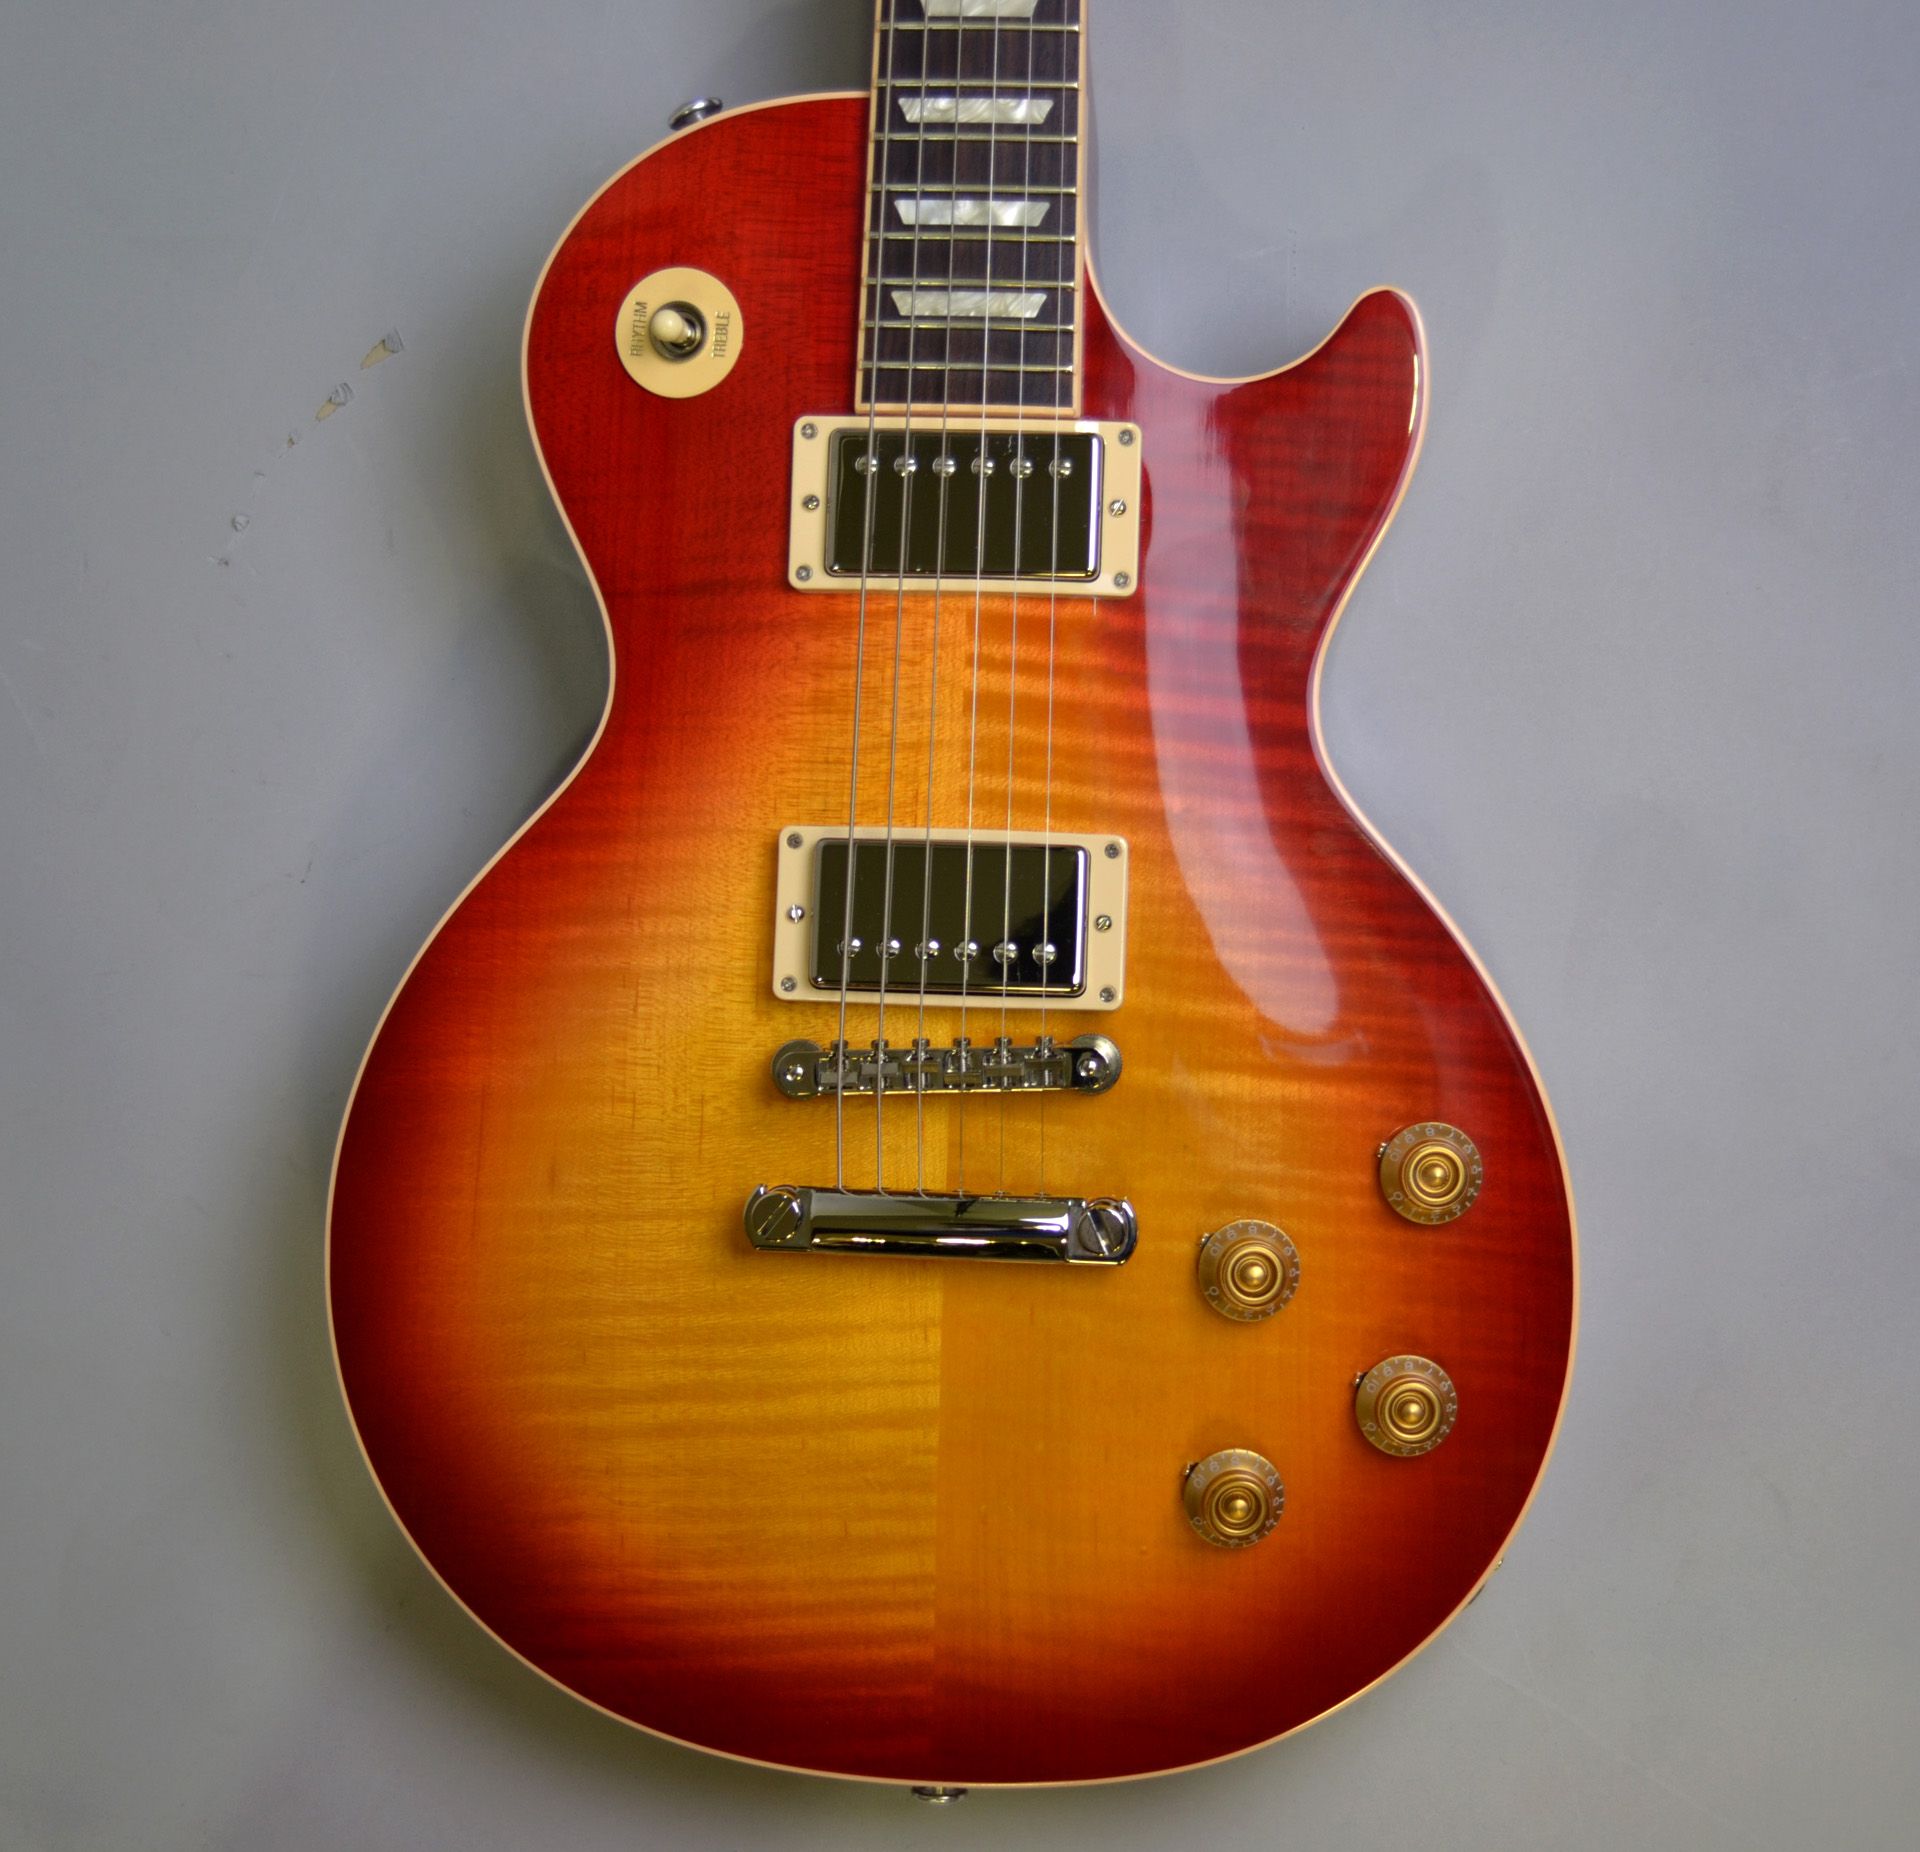 Les Paul Traditional 2018( Heritage Cherry Sunburst)のヘッド裏-アップ画像